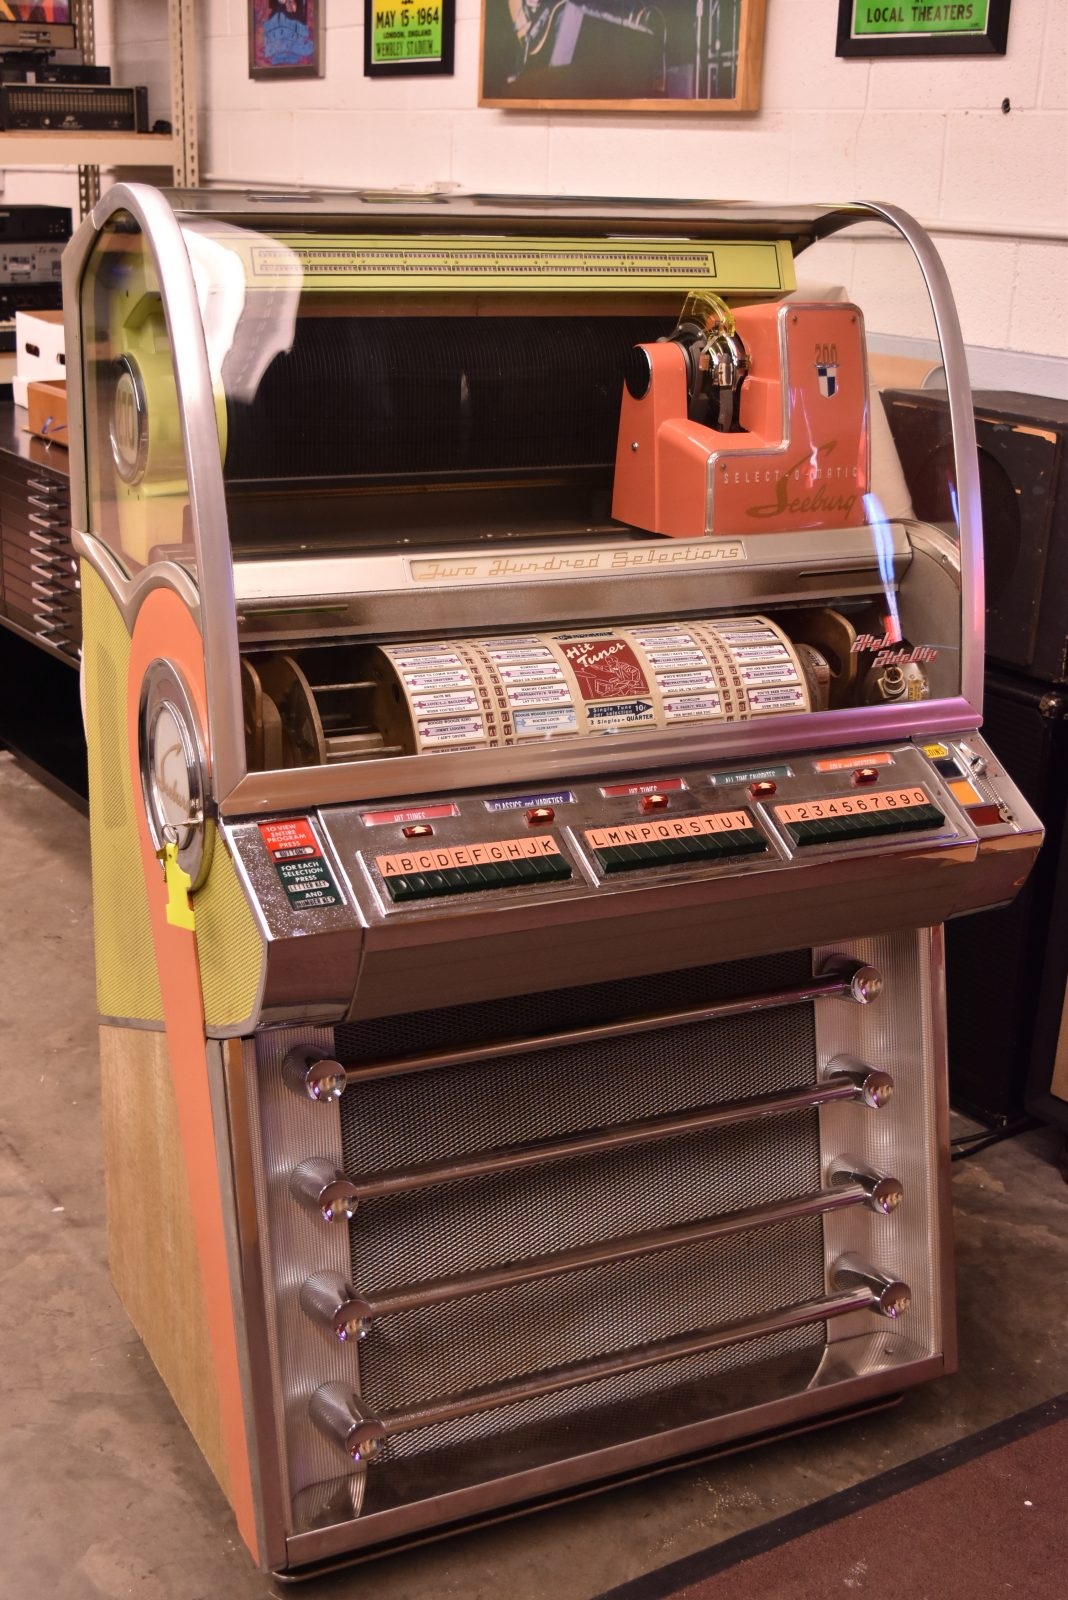 Seeburg Jukebox V200 Jukebox Vintage Audio Exchange